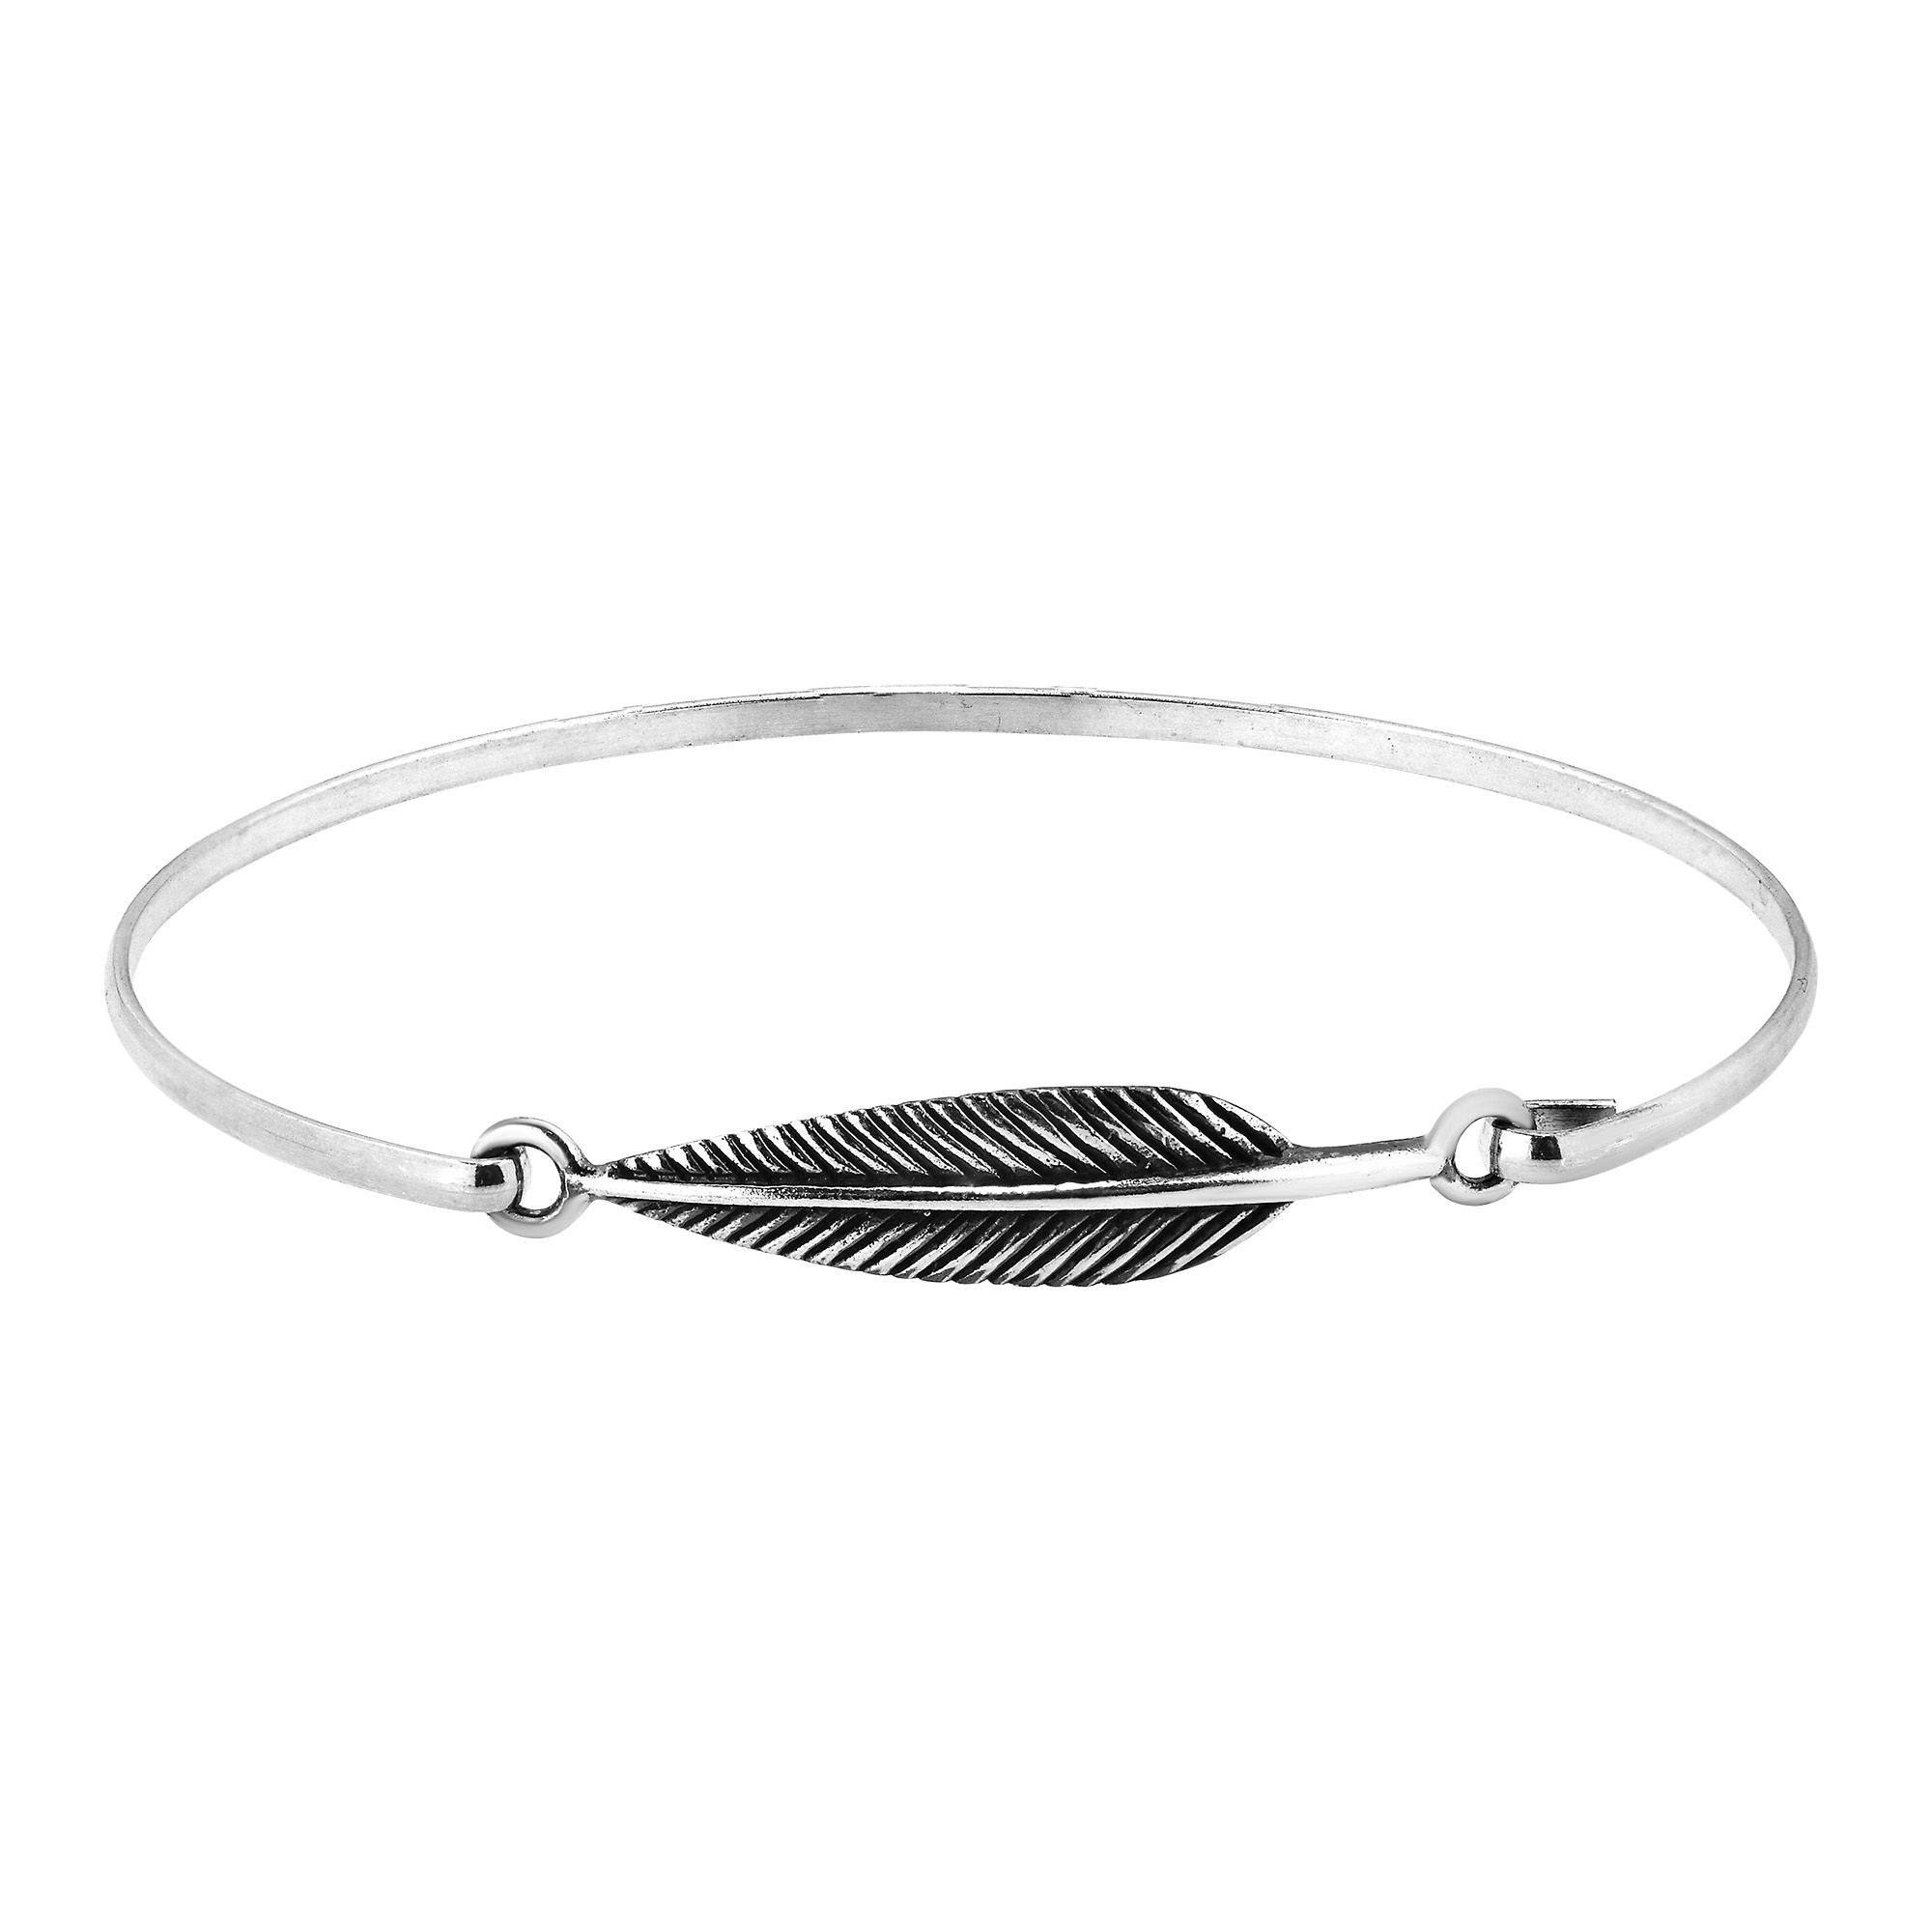 bracelets adjustable s plain bangle silver women identity torque bracelet sterling id products solid bangles silverly